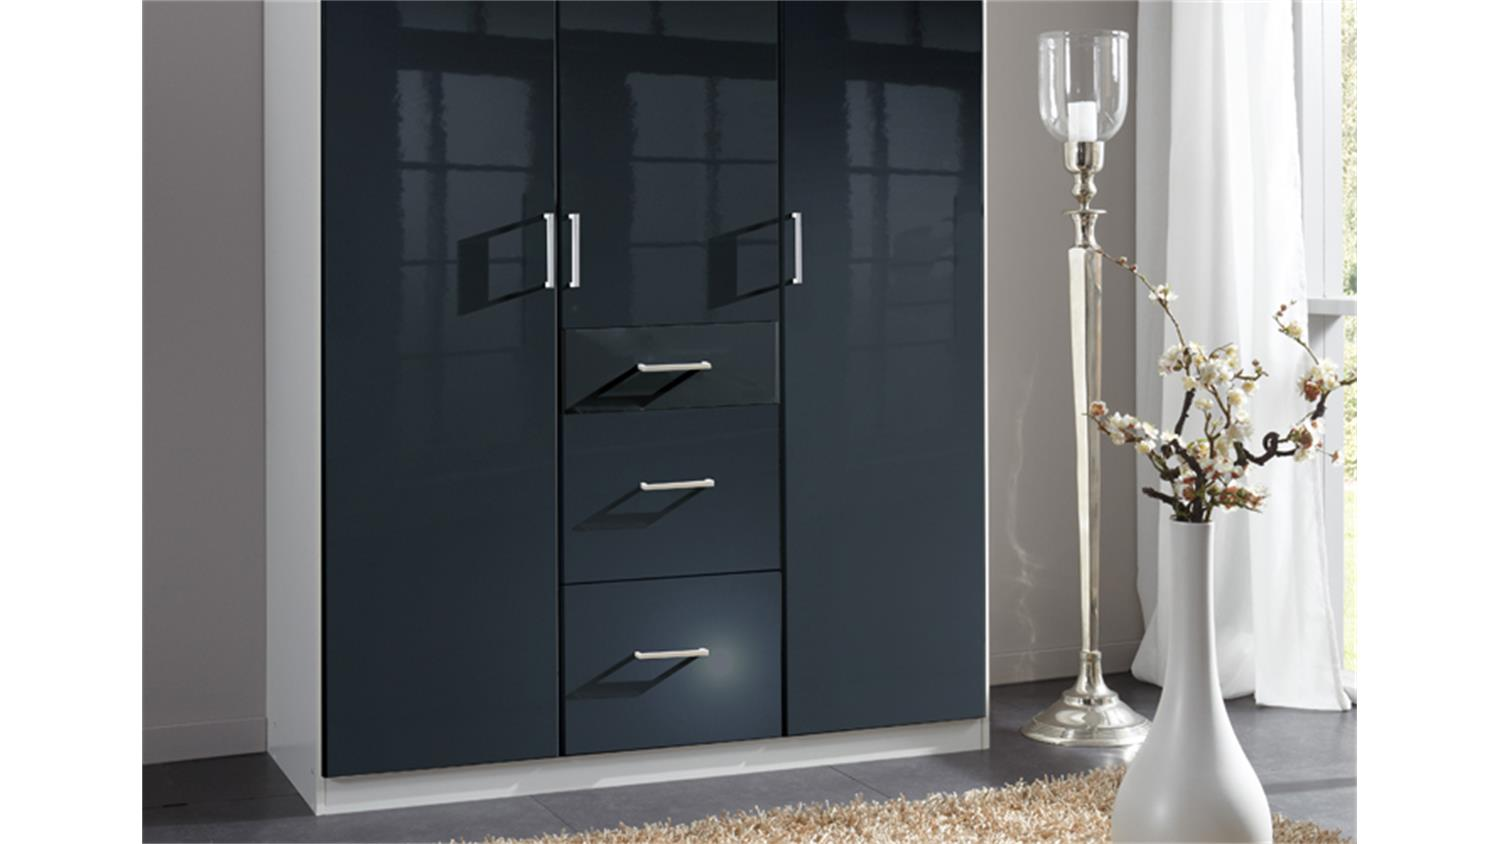 kleiderschrank clack in hochglanz schwarz alpinwei 135 cm. Black Bedroom Furniture Sets. Home Design Ideas